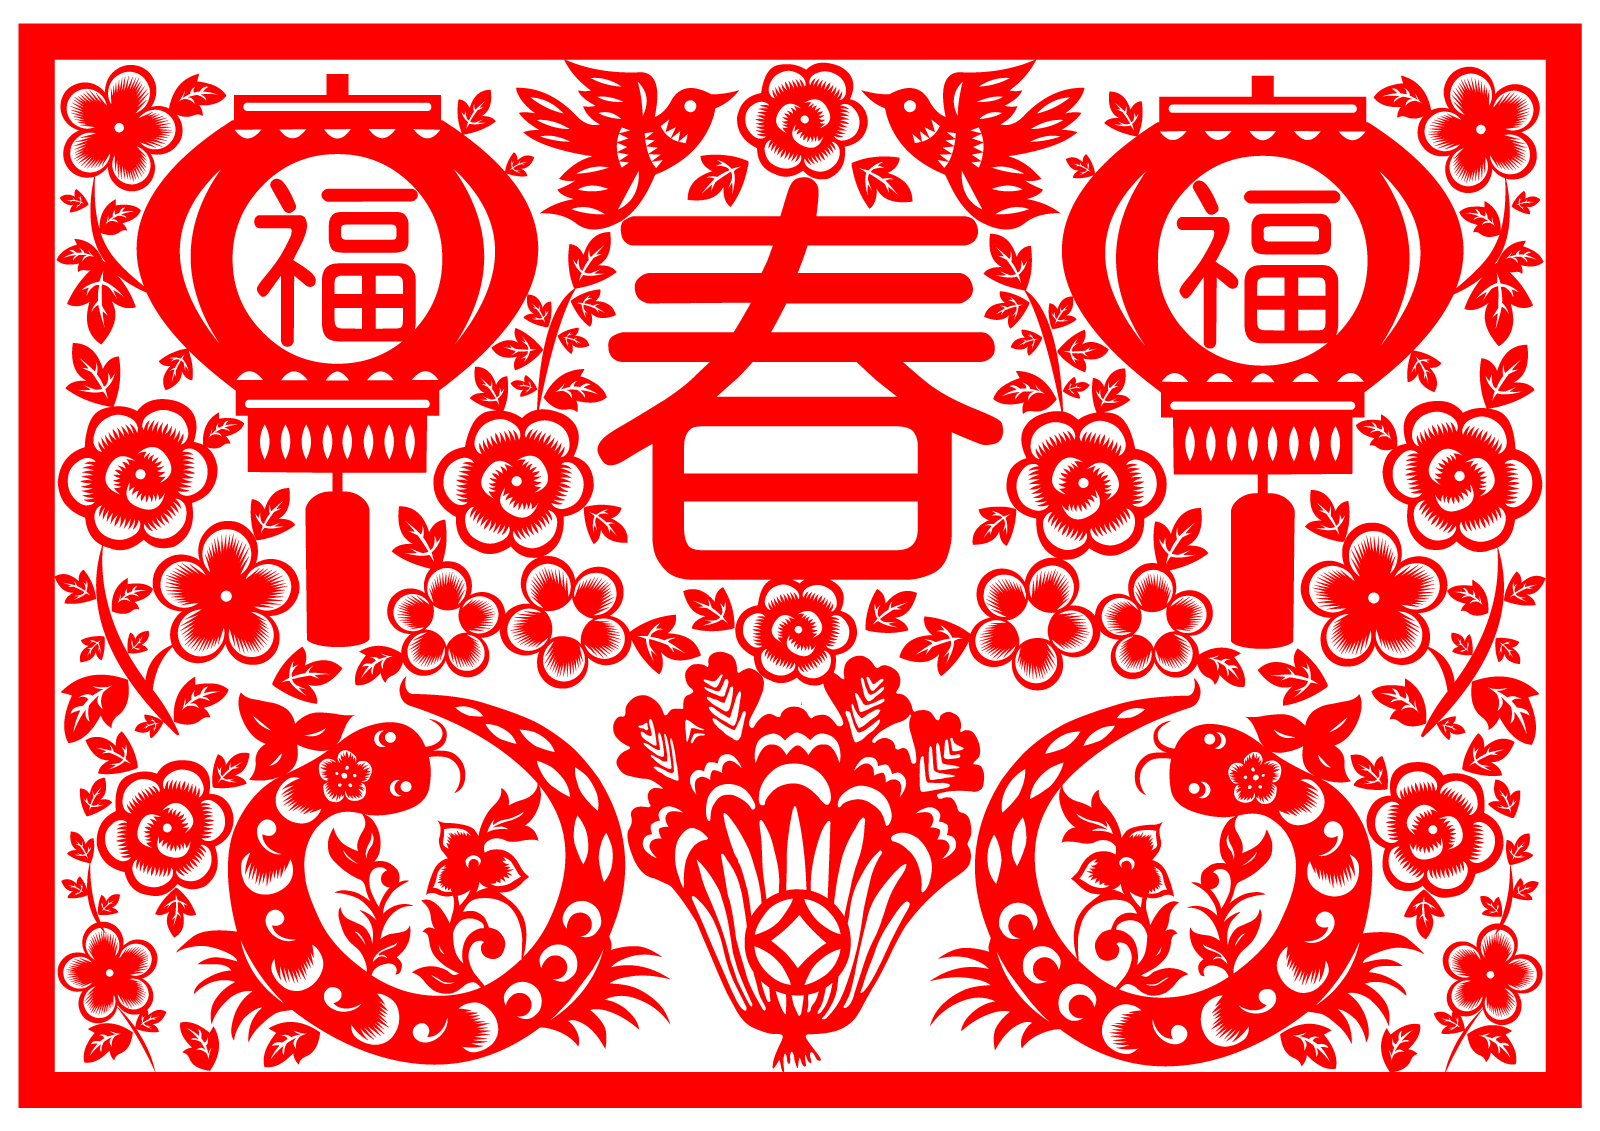 chinesefontdesign.com 2017 03 19 09 22 24 New Year greeting traditional Chinese paper cut art   China Illustrations Vectors AI ESP Free Download Chinese paper cut art esp Chinese paper cut art